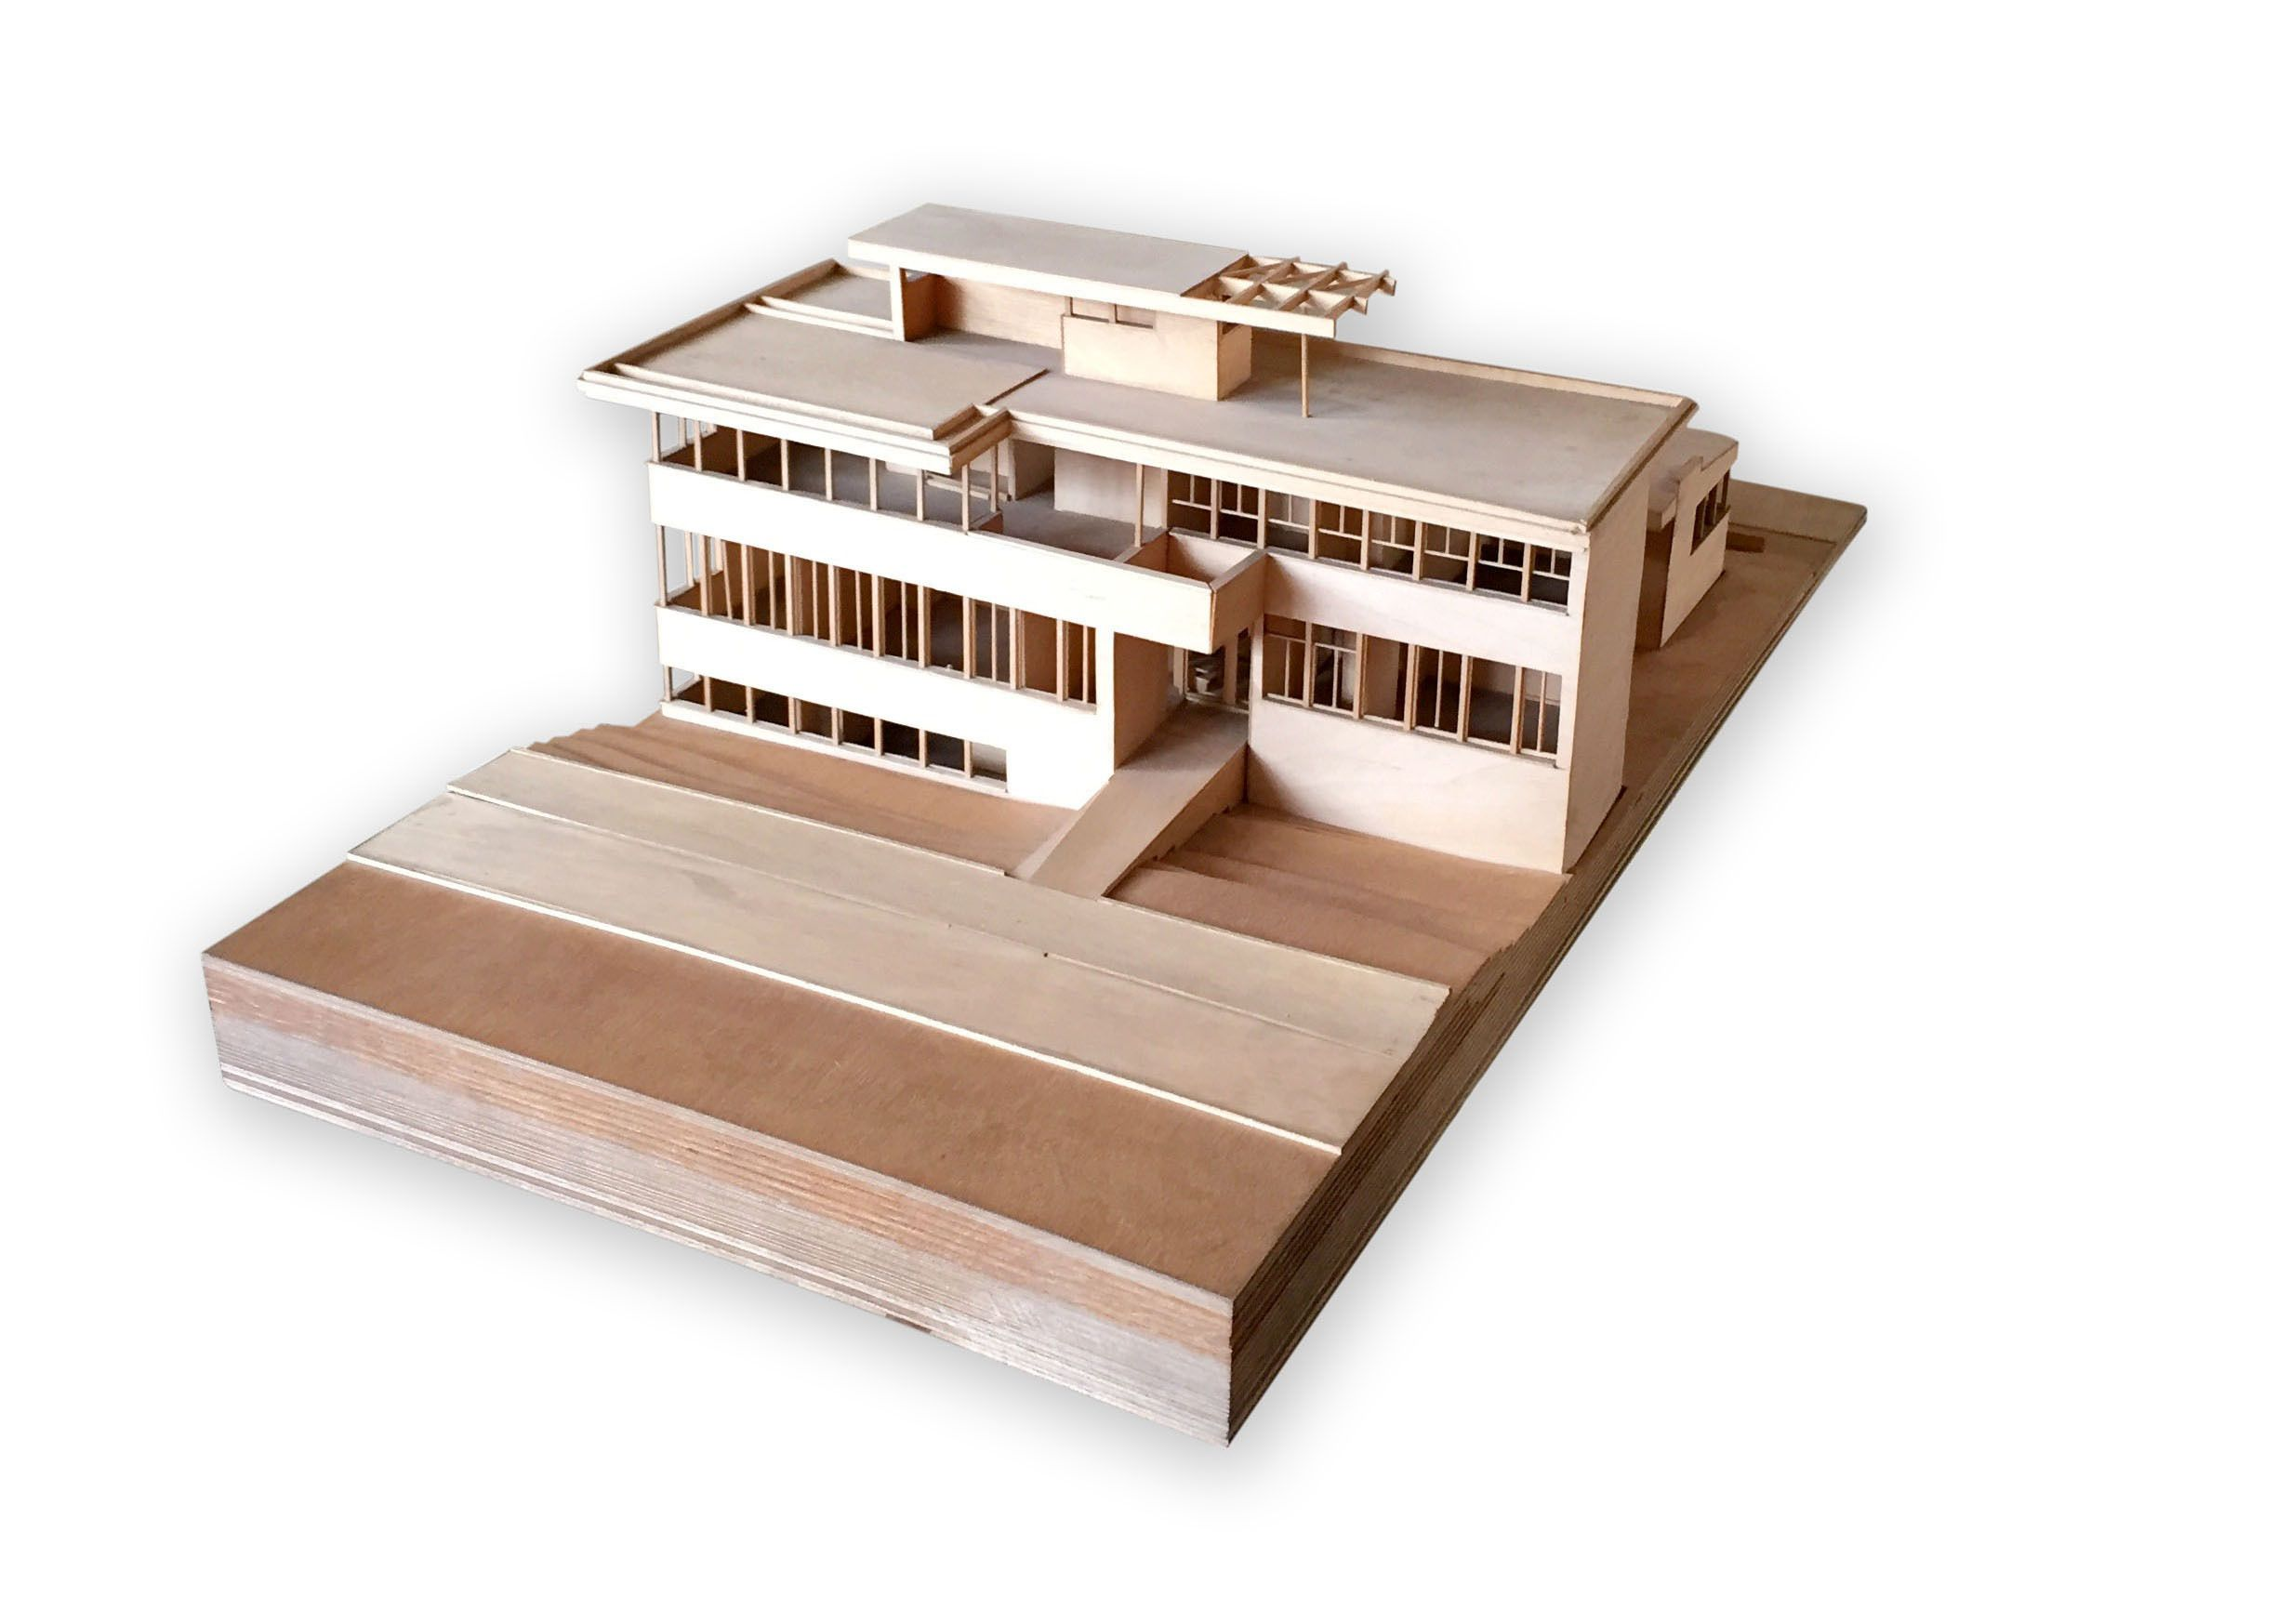 Perched On A Piano Towards The Front Of The House Is A Wooden Model That Was